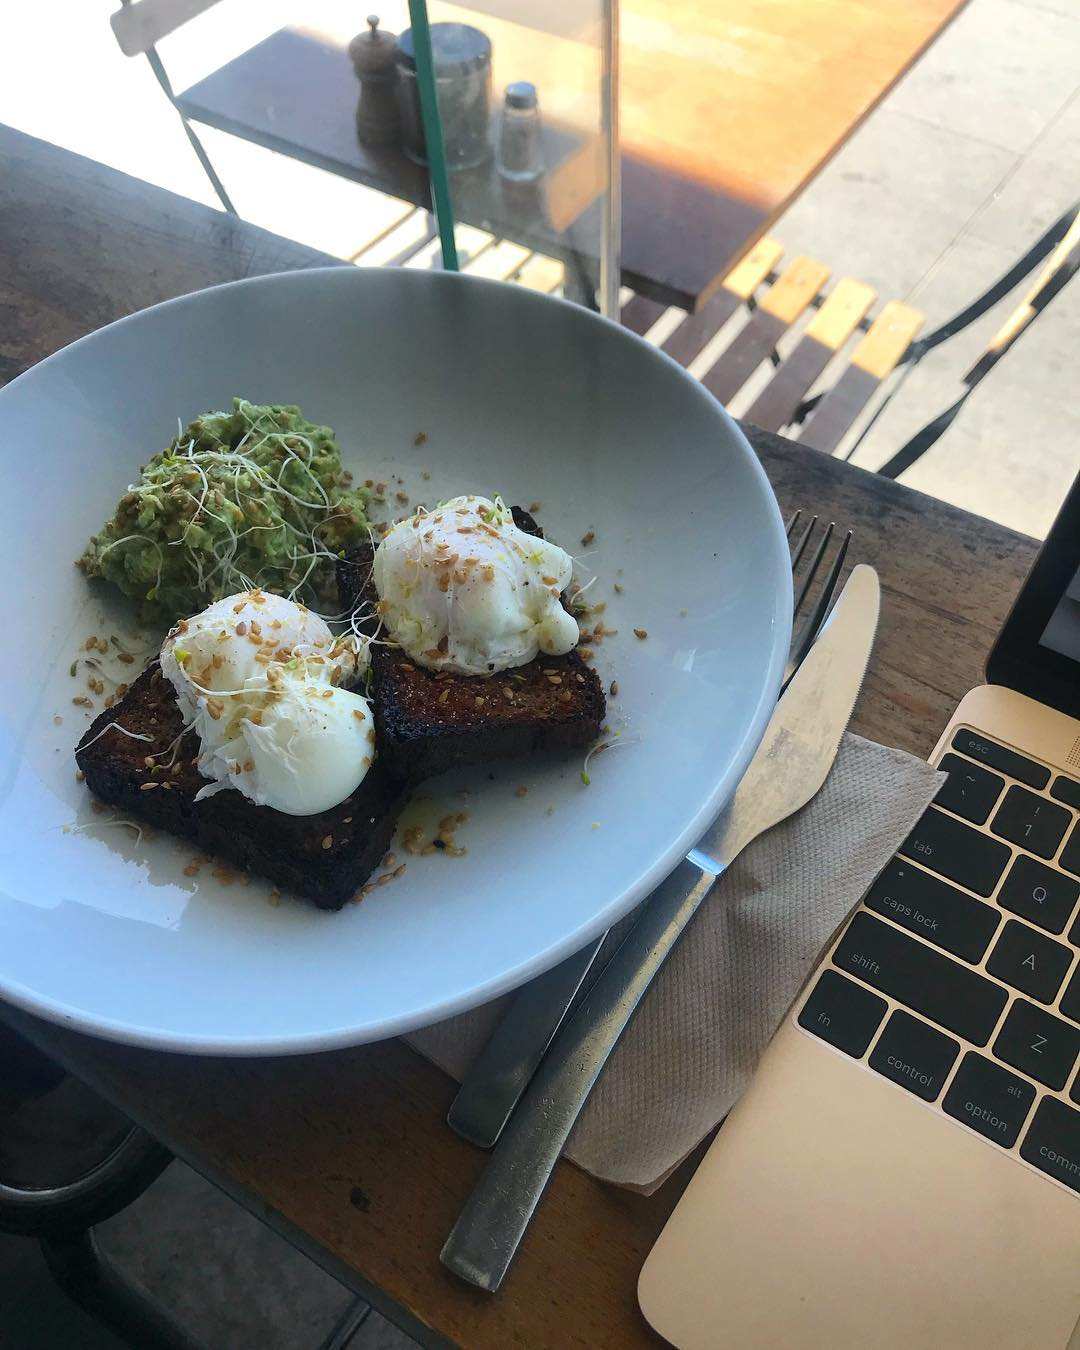 Sometimes you just need to get out of the office and work from a cafe